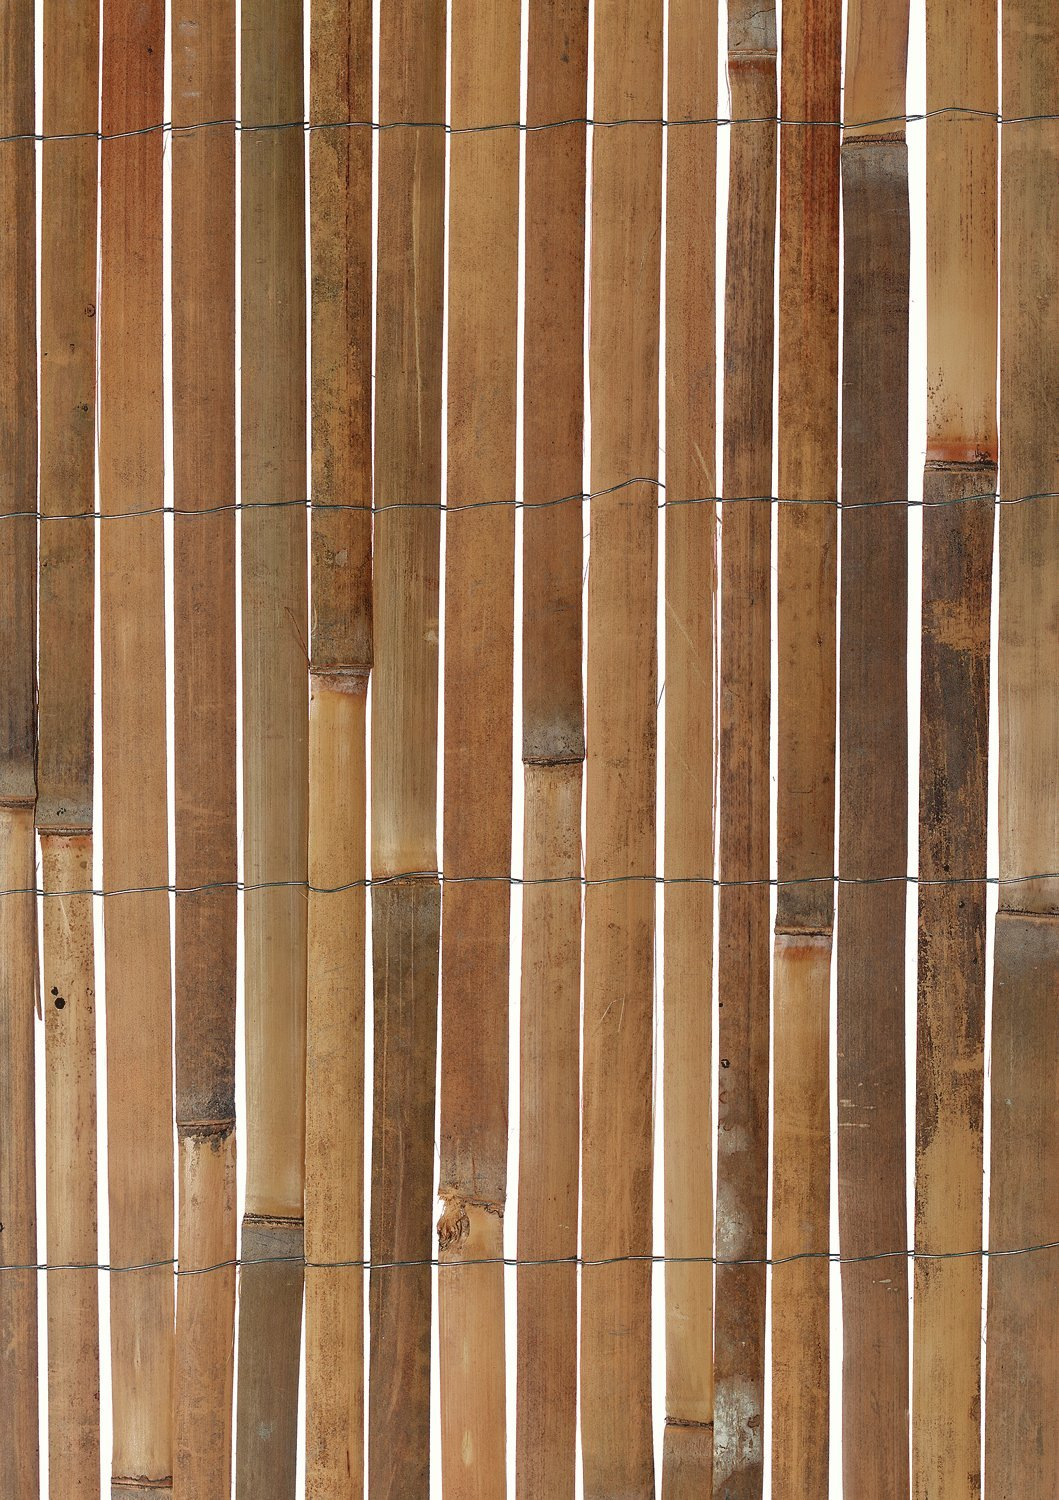 Bamboo Slat Screening 10m Wide x 2m High - Garden Screen Fencing - Bamboo Fence